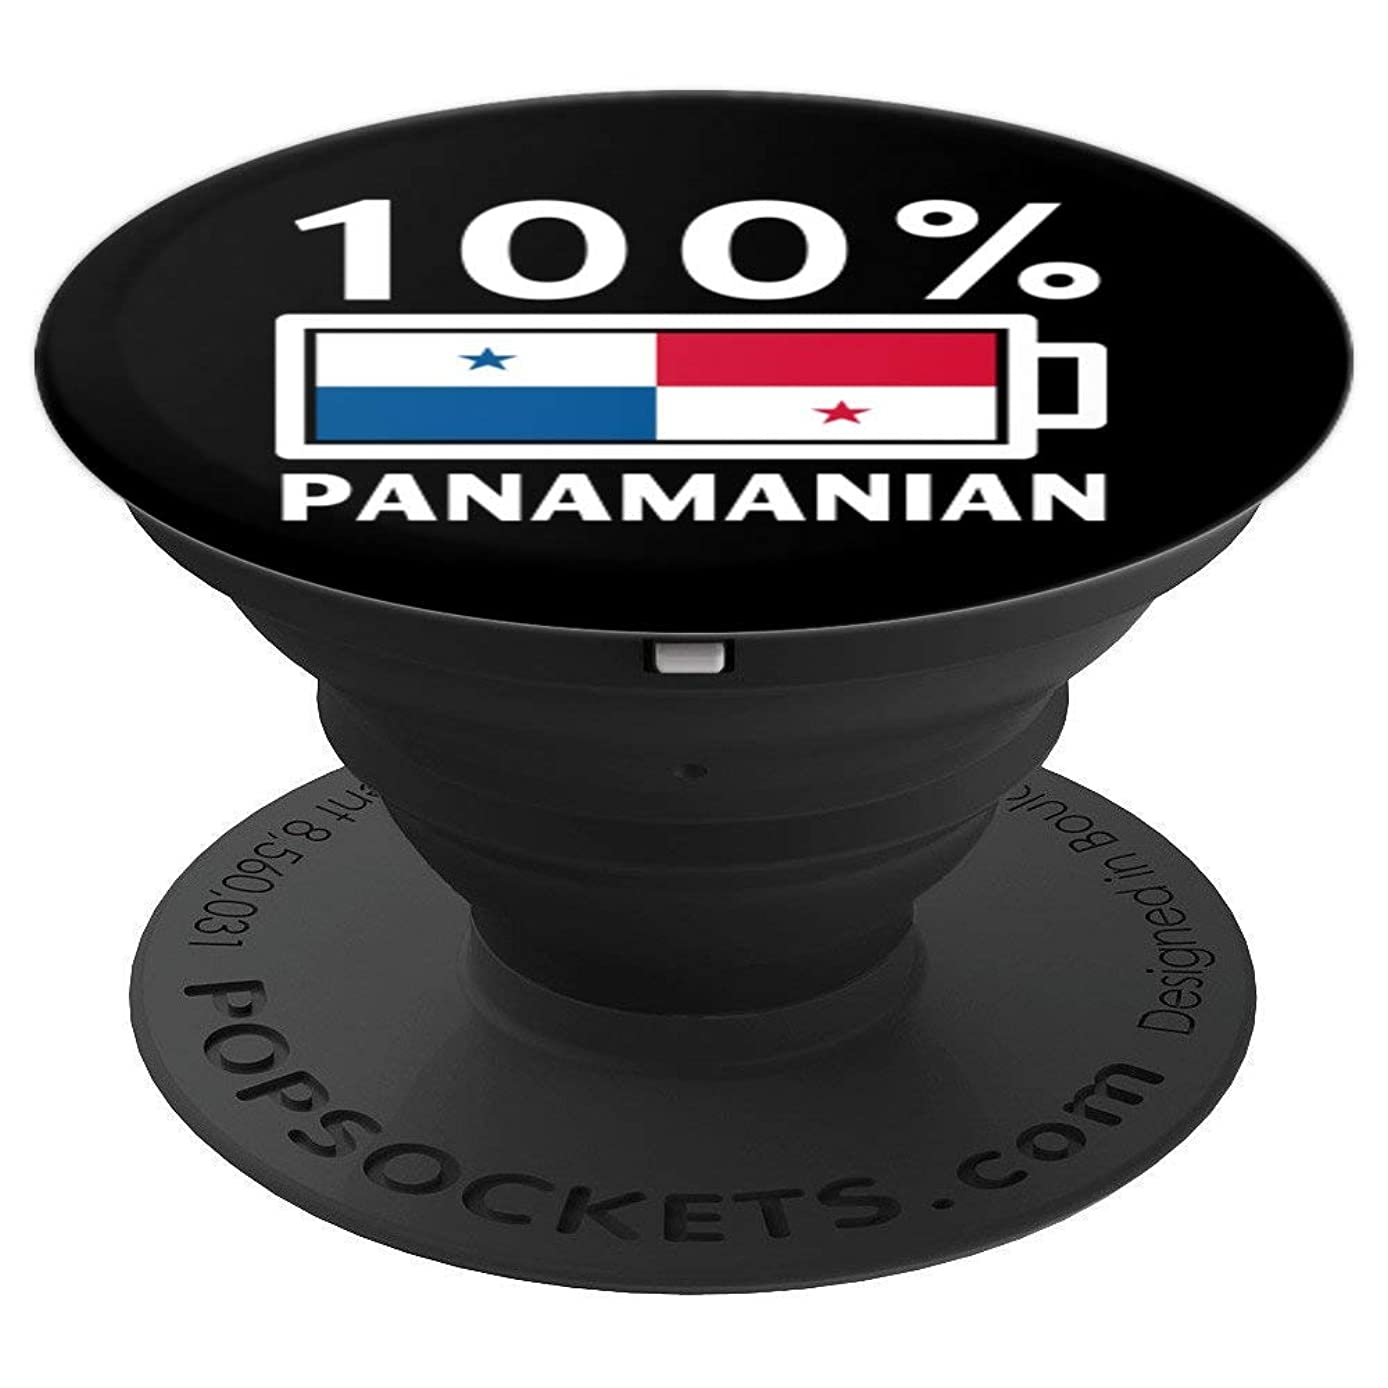 Panama Flag Design | 100% Panamanian Battery Power Tee - PopSockets Grip and Stand for Phones and Tablets